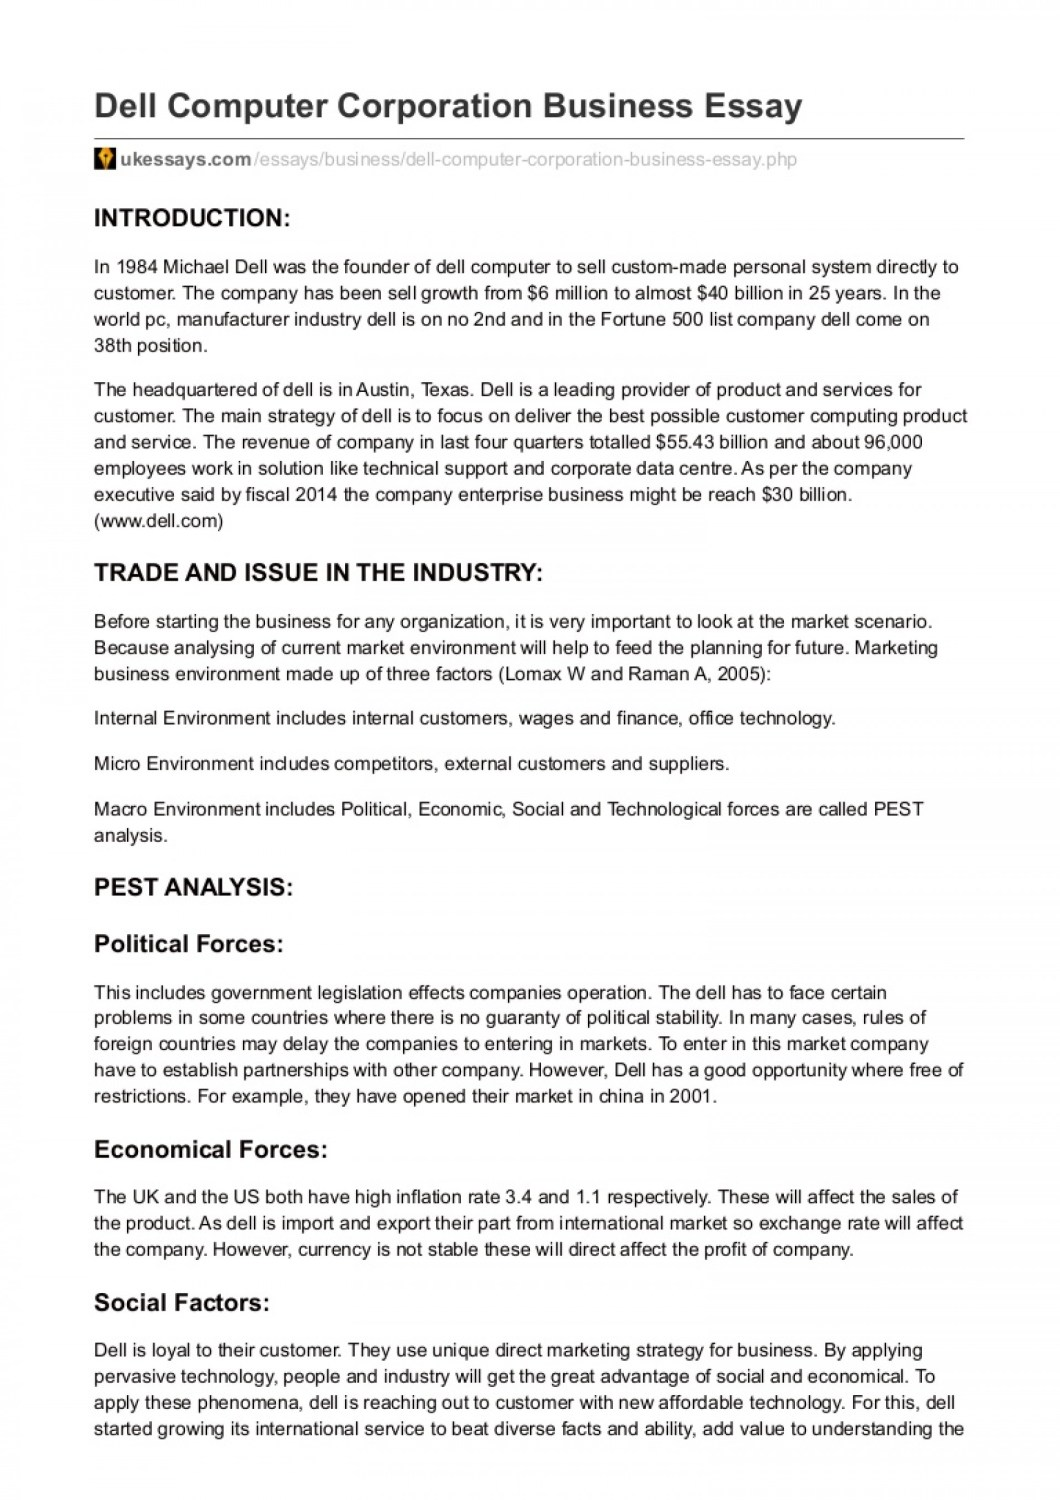 music essays music composition brief gcse music marked by  persuasive essay topics about music bestlettersco music essay topics on  computer ukessays com dell corporation